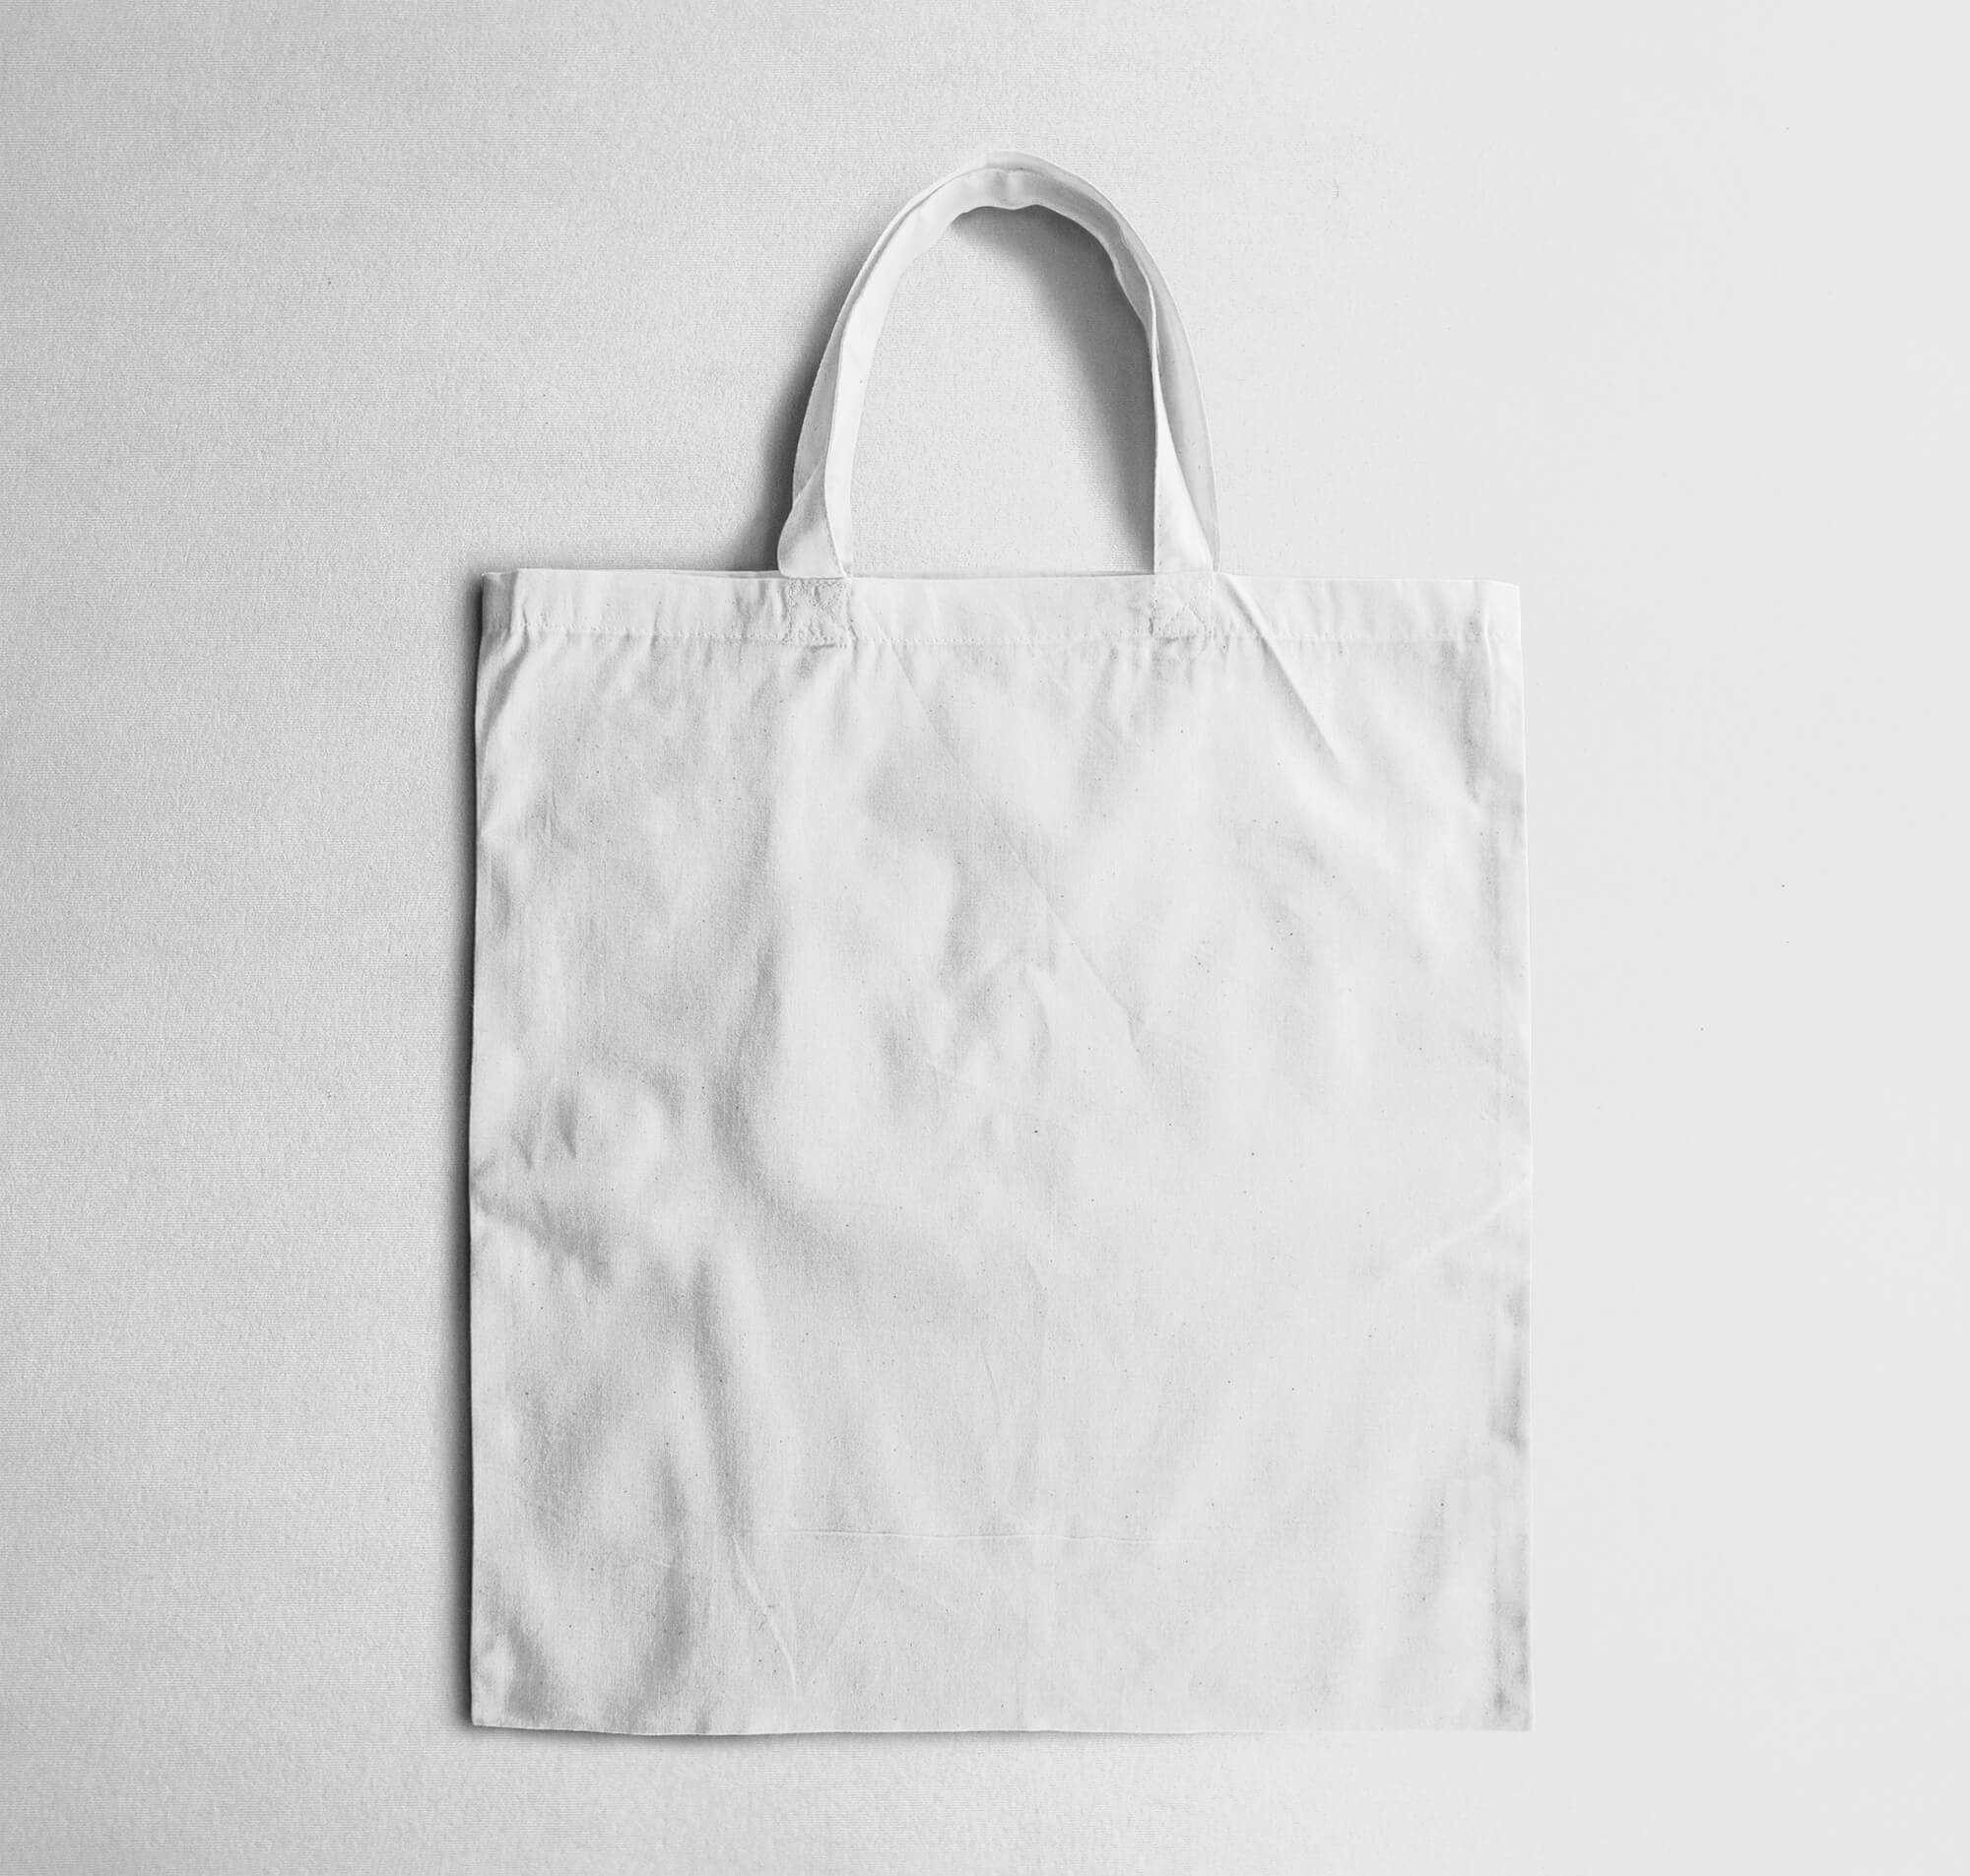 Blank Free Cloth Bag Mockup PSD Template